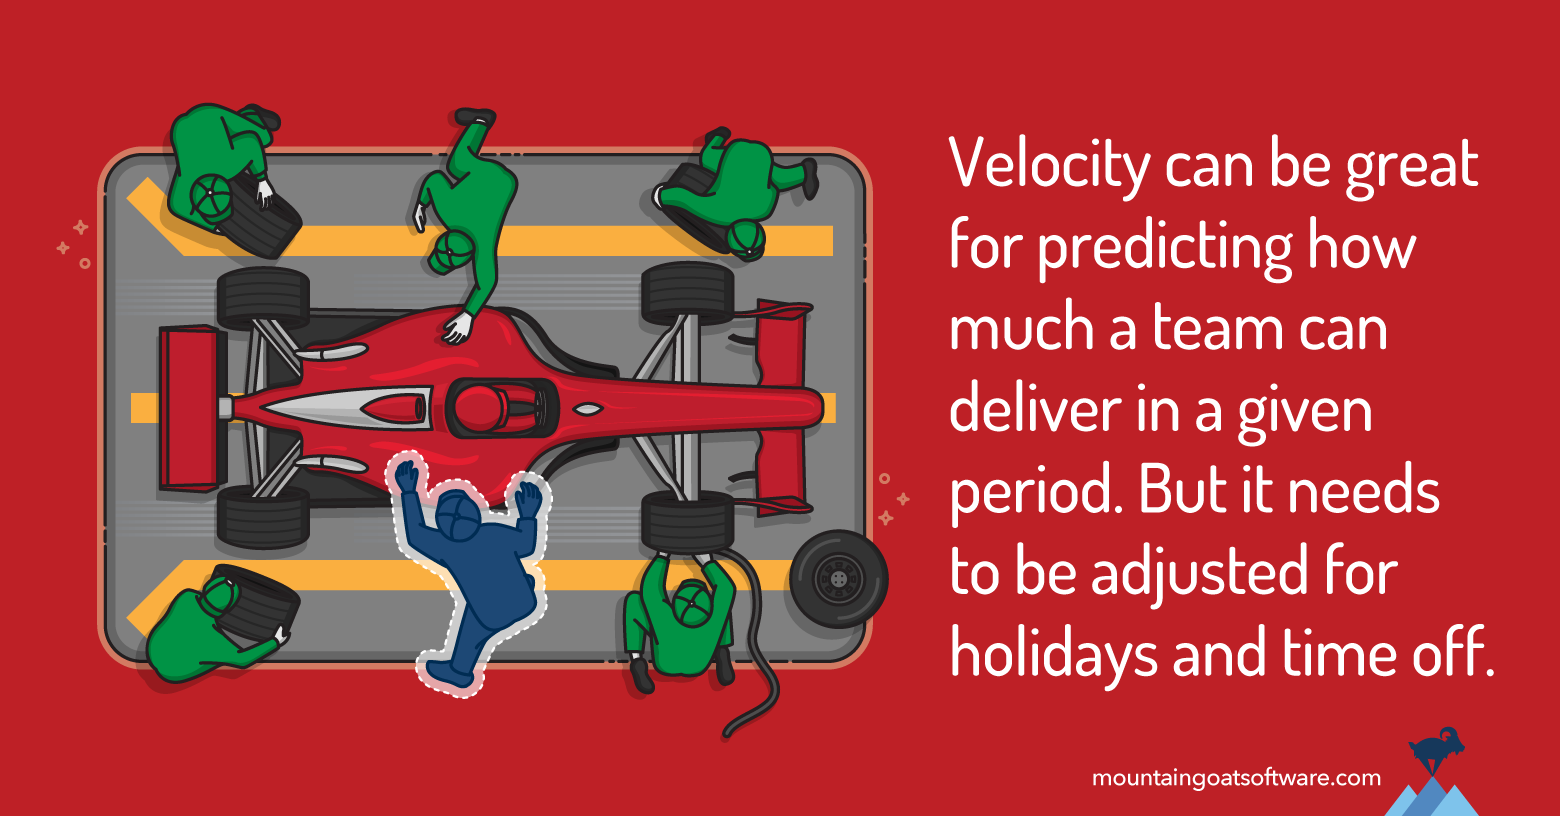 Three Approaches to Estimating the Impact of Holidays and Time Off on Velocity